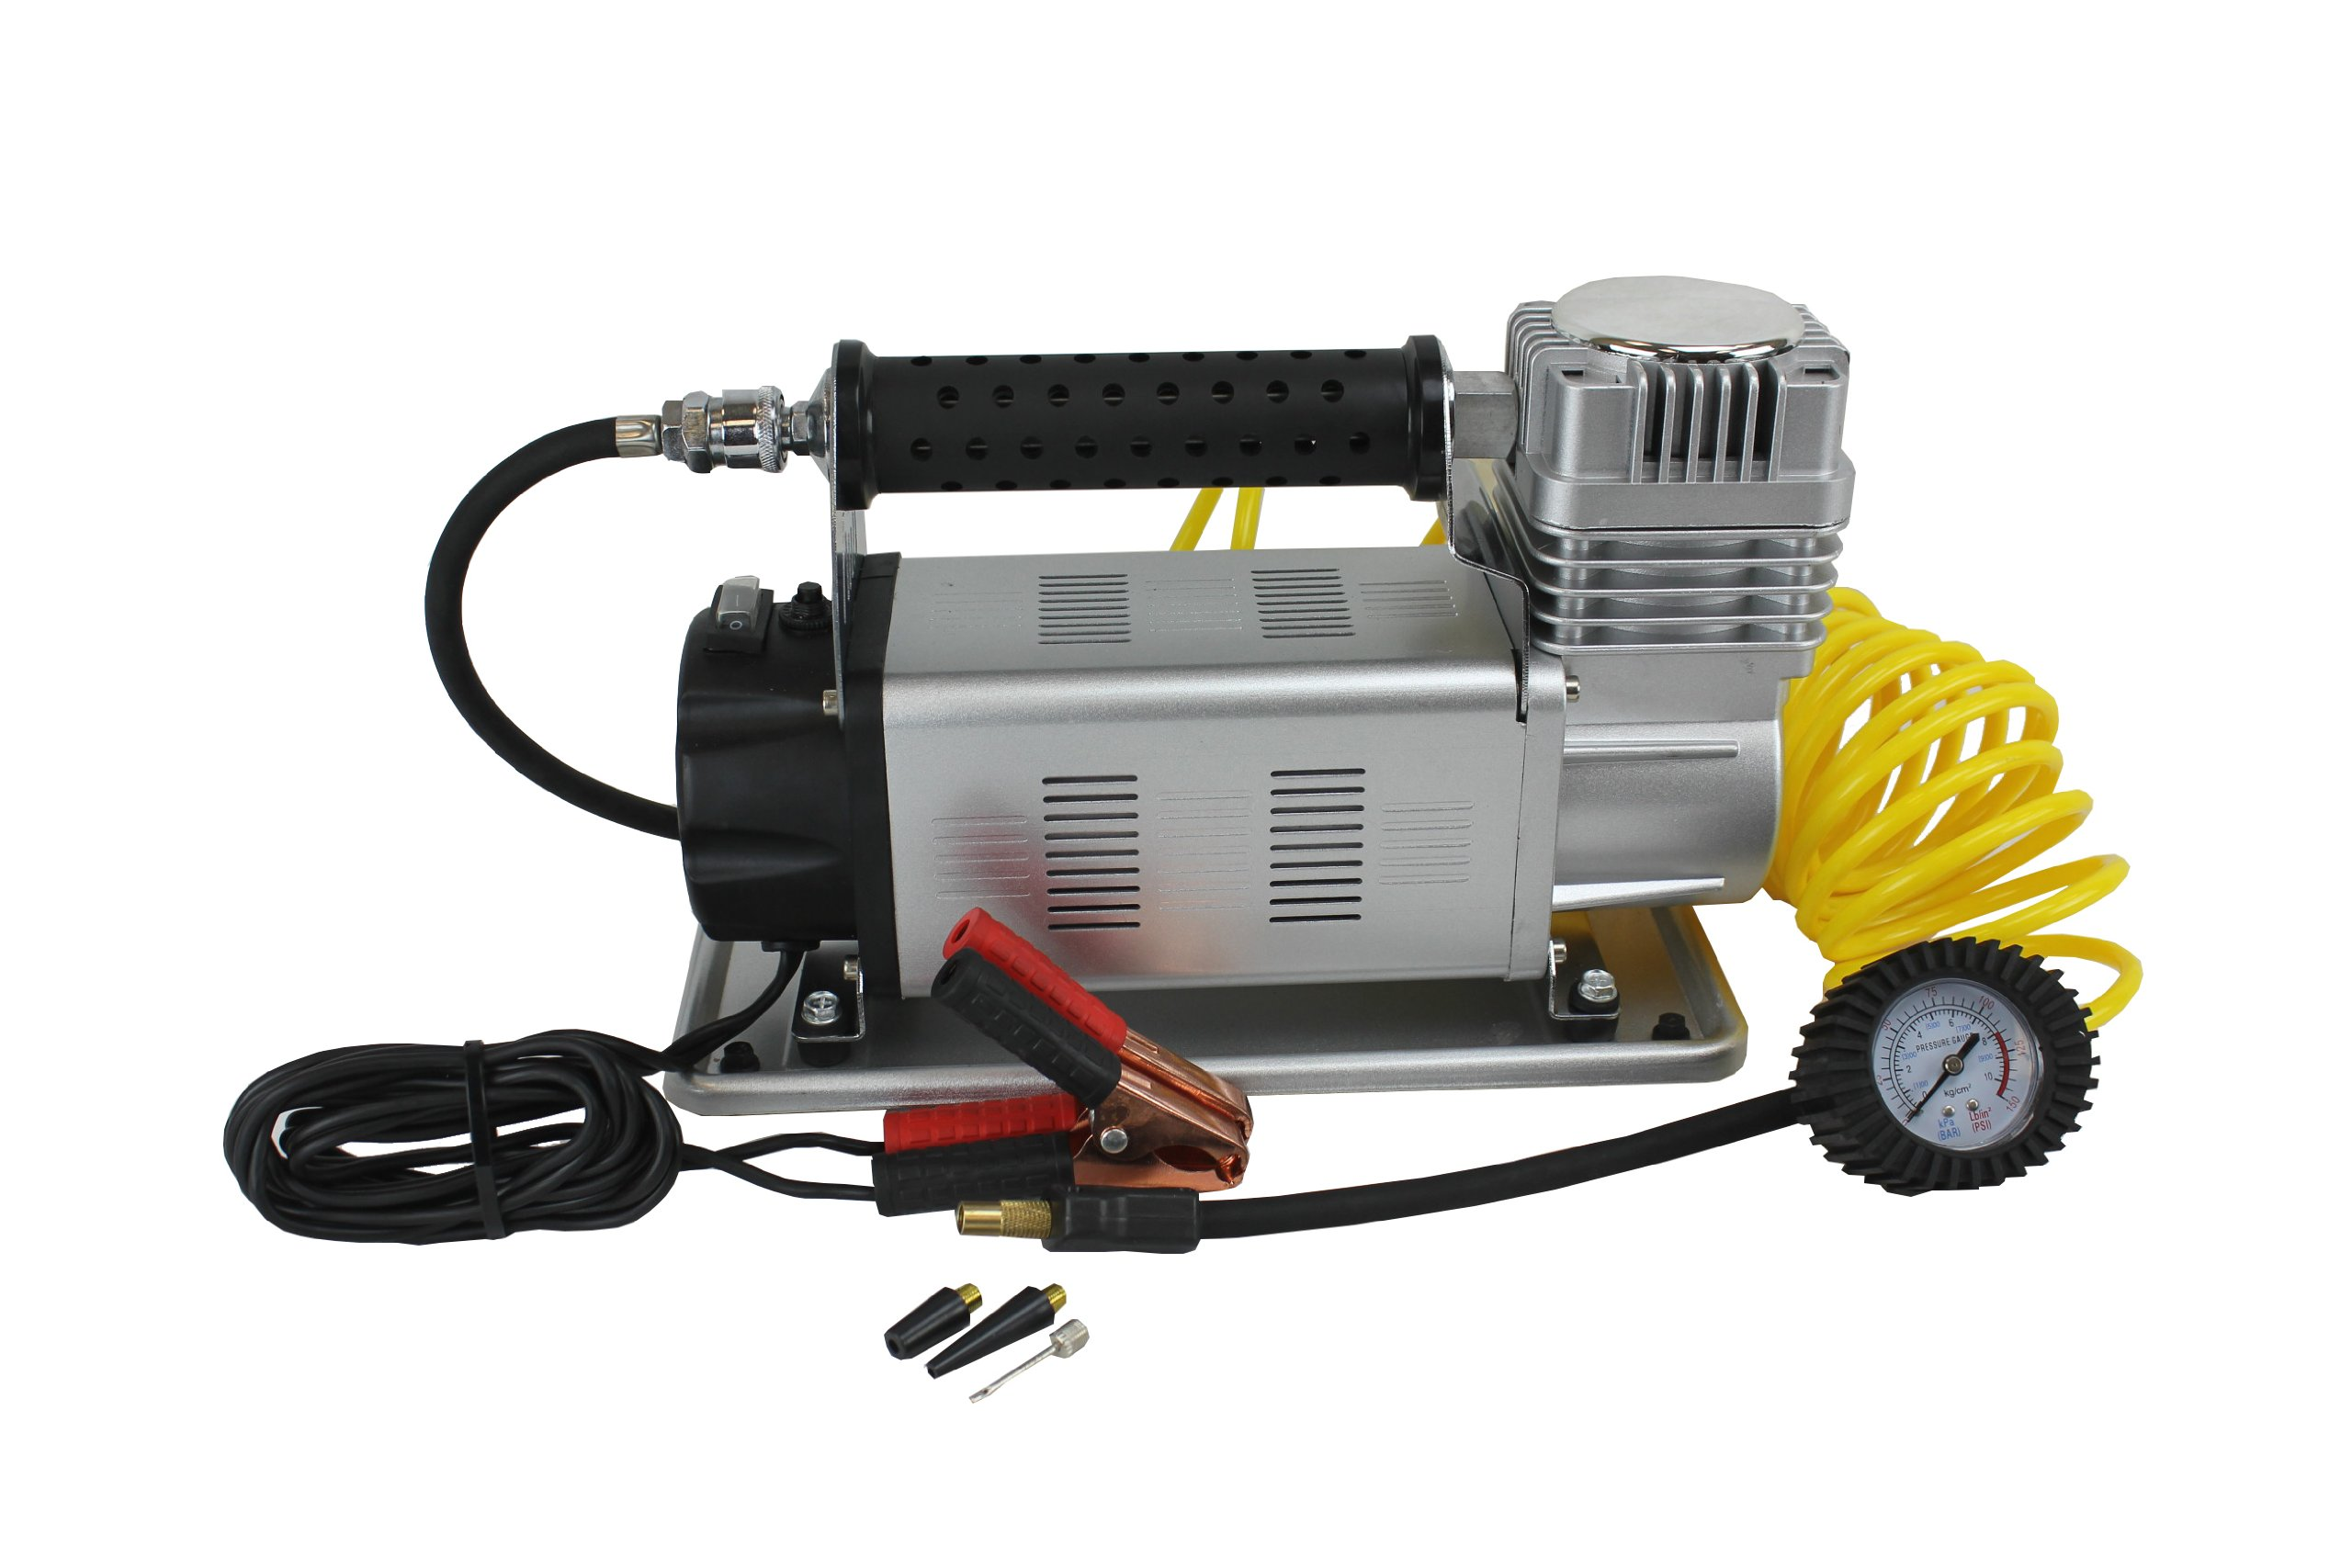 Tuff Stuff Xtreme Portable Air Compressor 150psi High Volume- 35'' and Larger Tires by Tuff Stuff